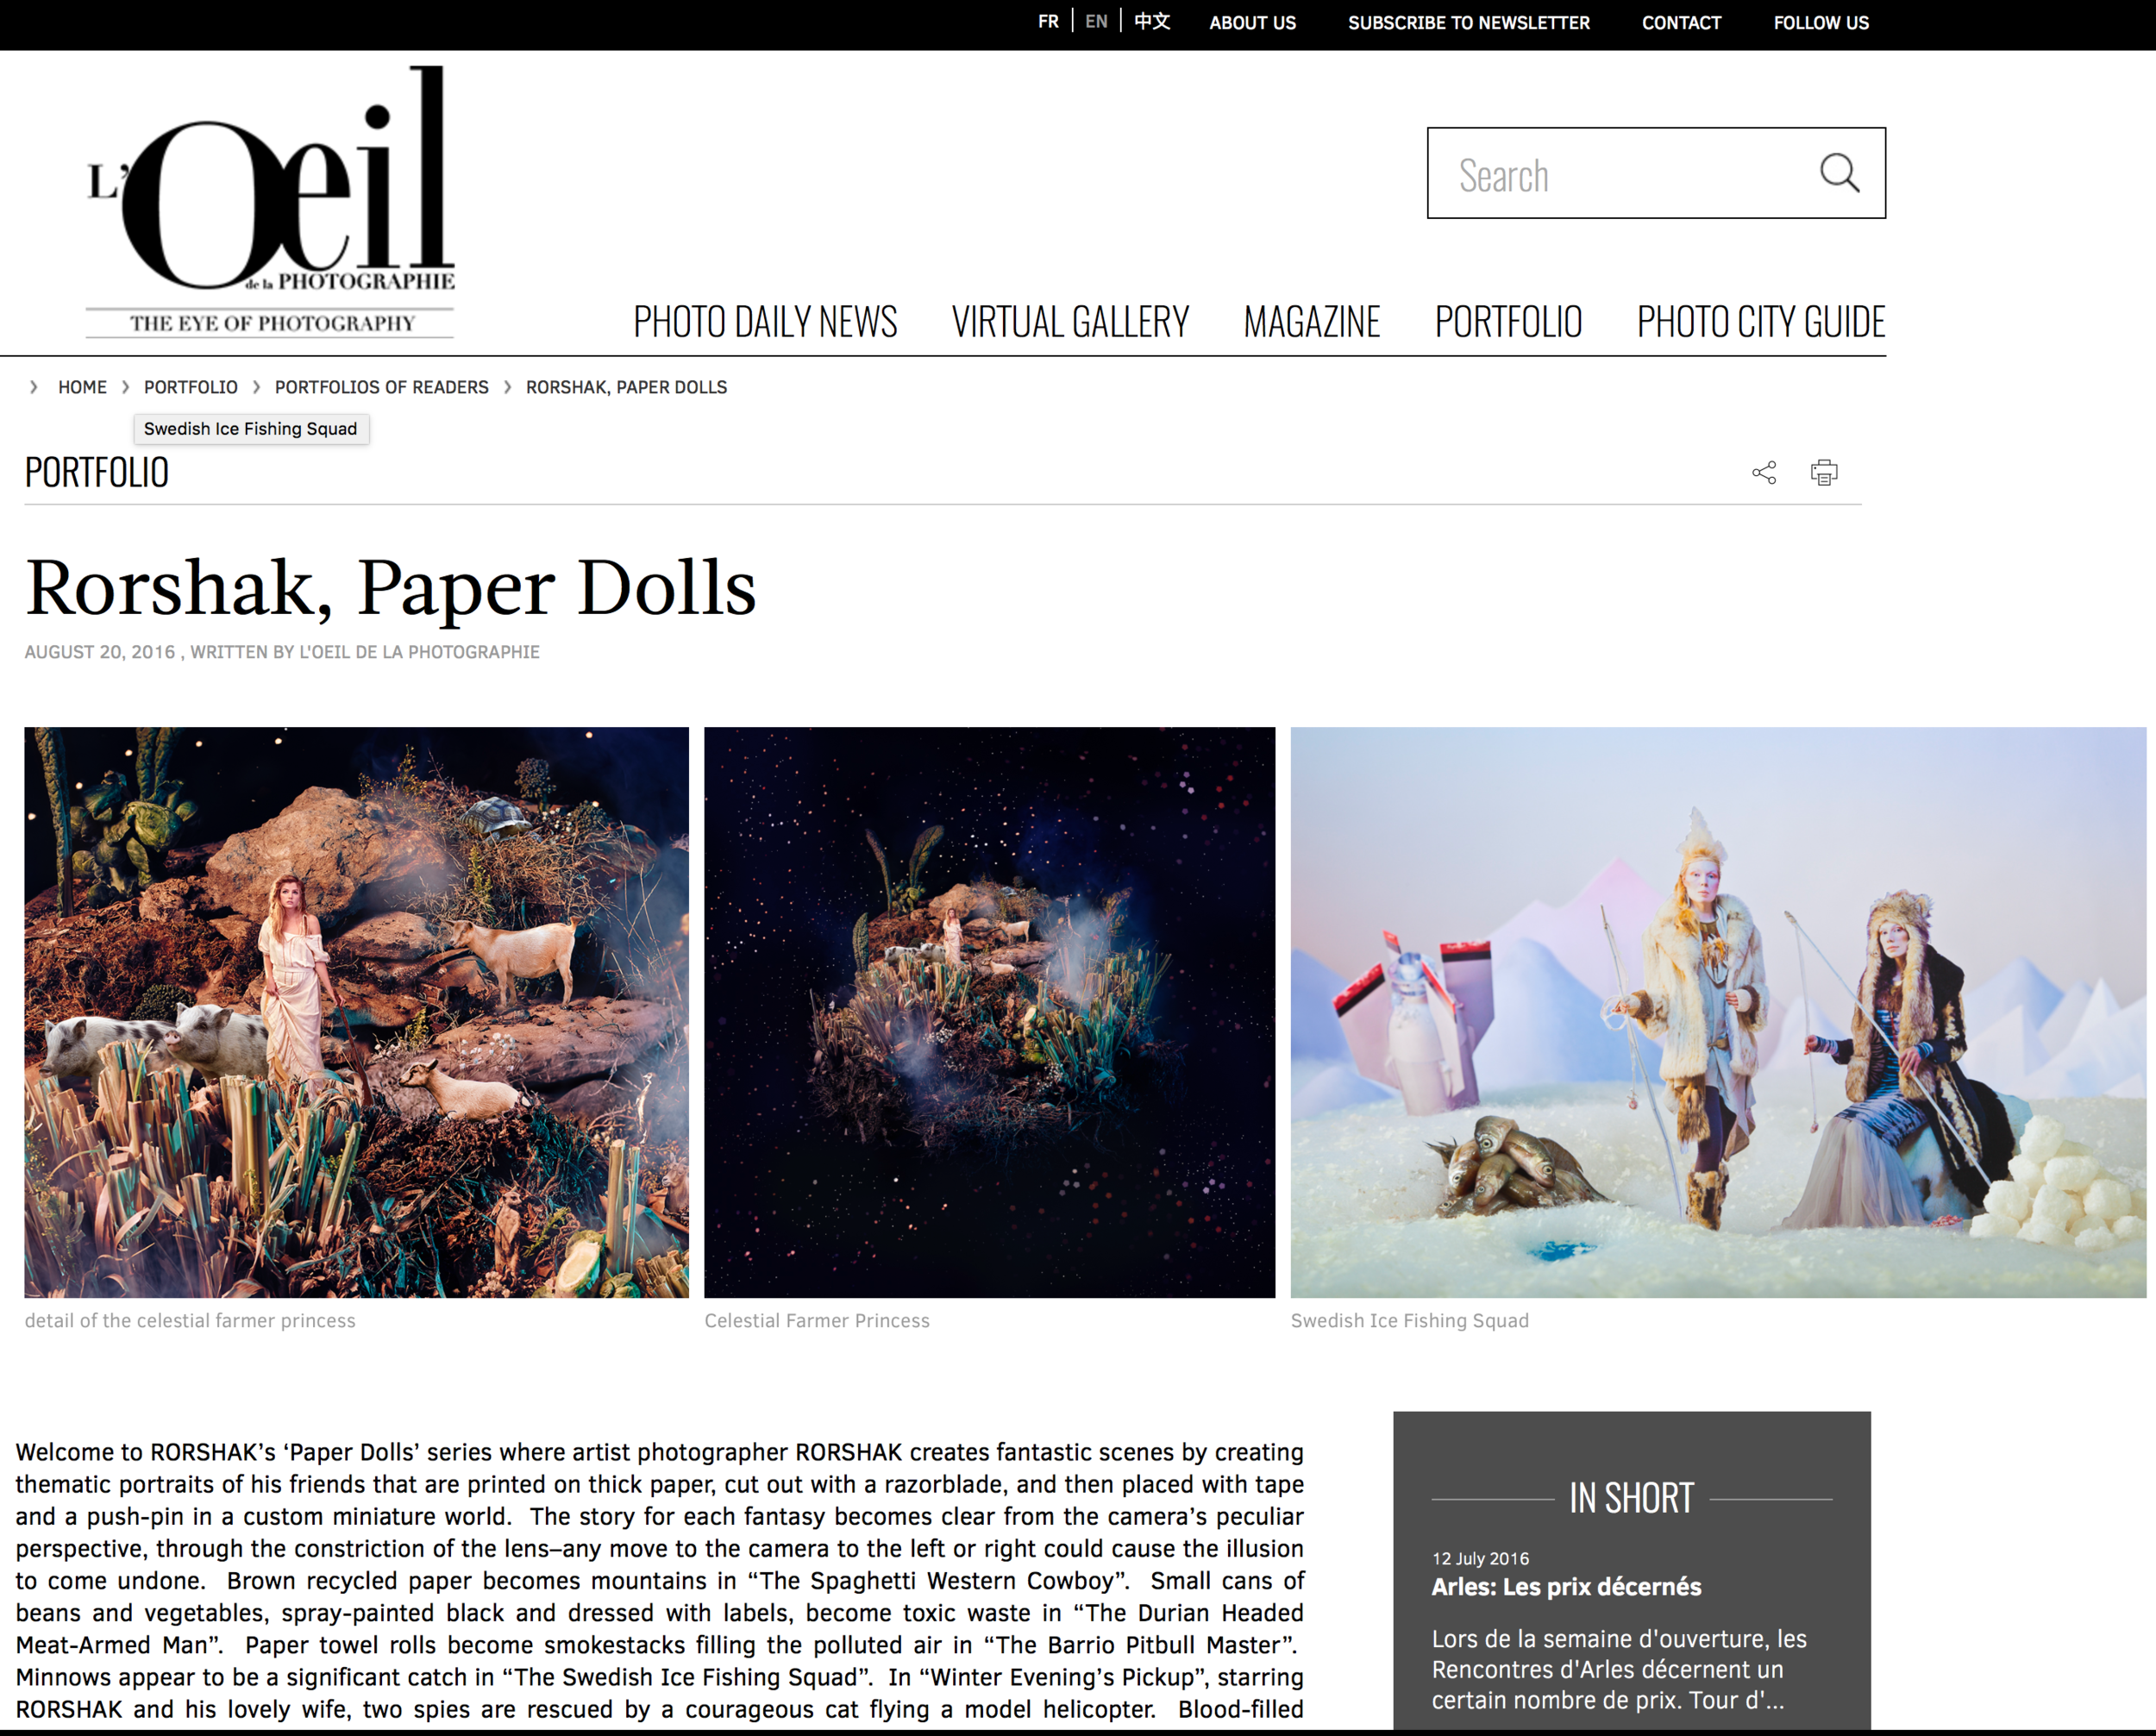 I was delighted to see my work featured by the world-famous, and perhaps the world's very best, photo blog this weekend. Thank you L'Oeil de la Photographie!